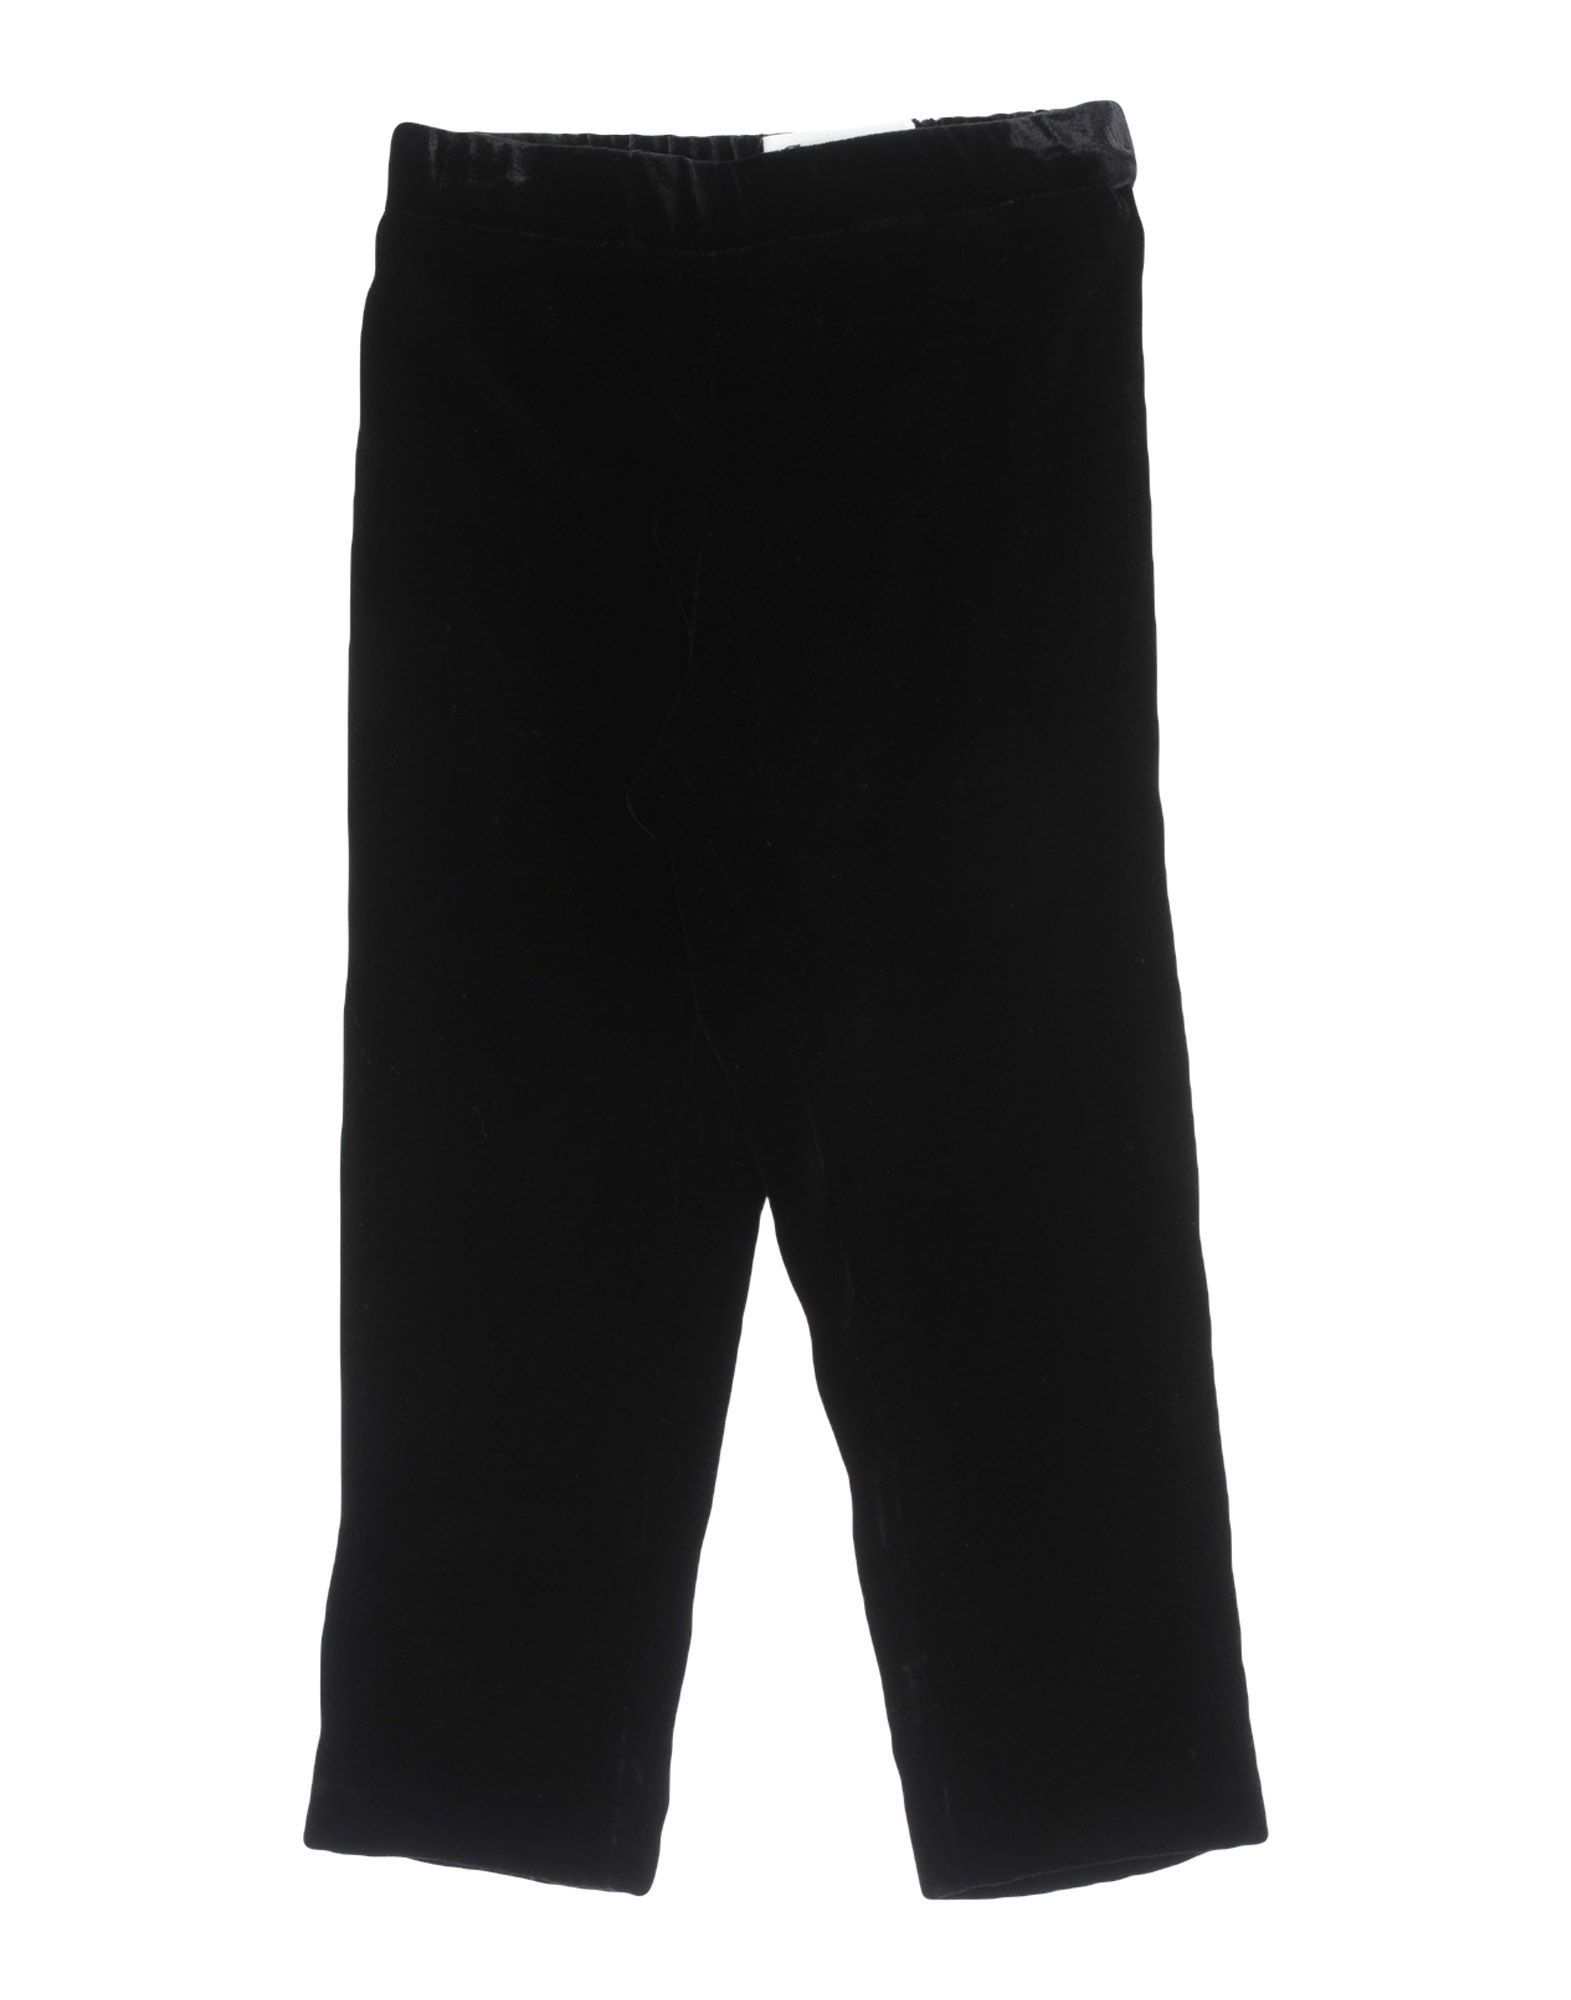 BONPOINT Casual Pants in Black